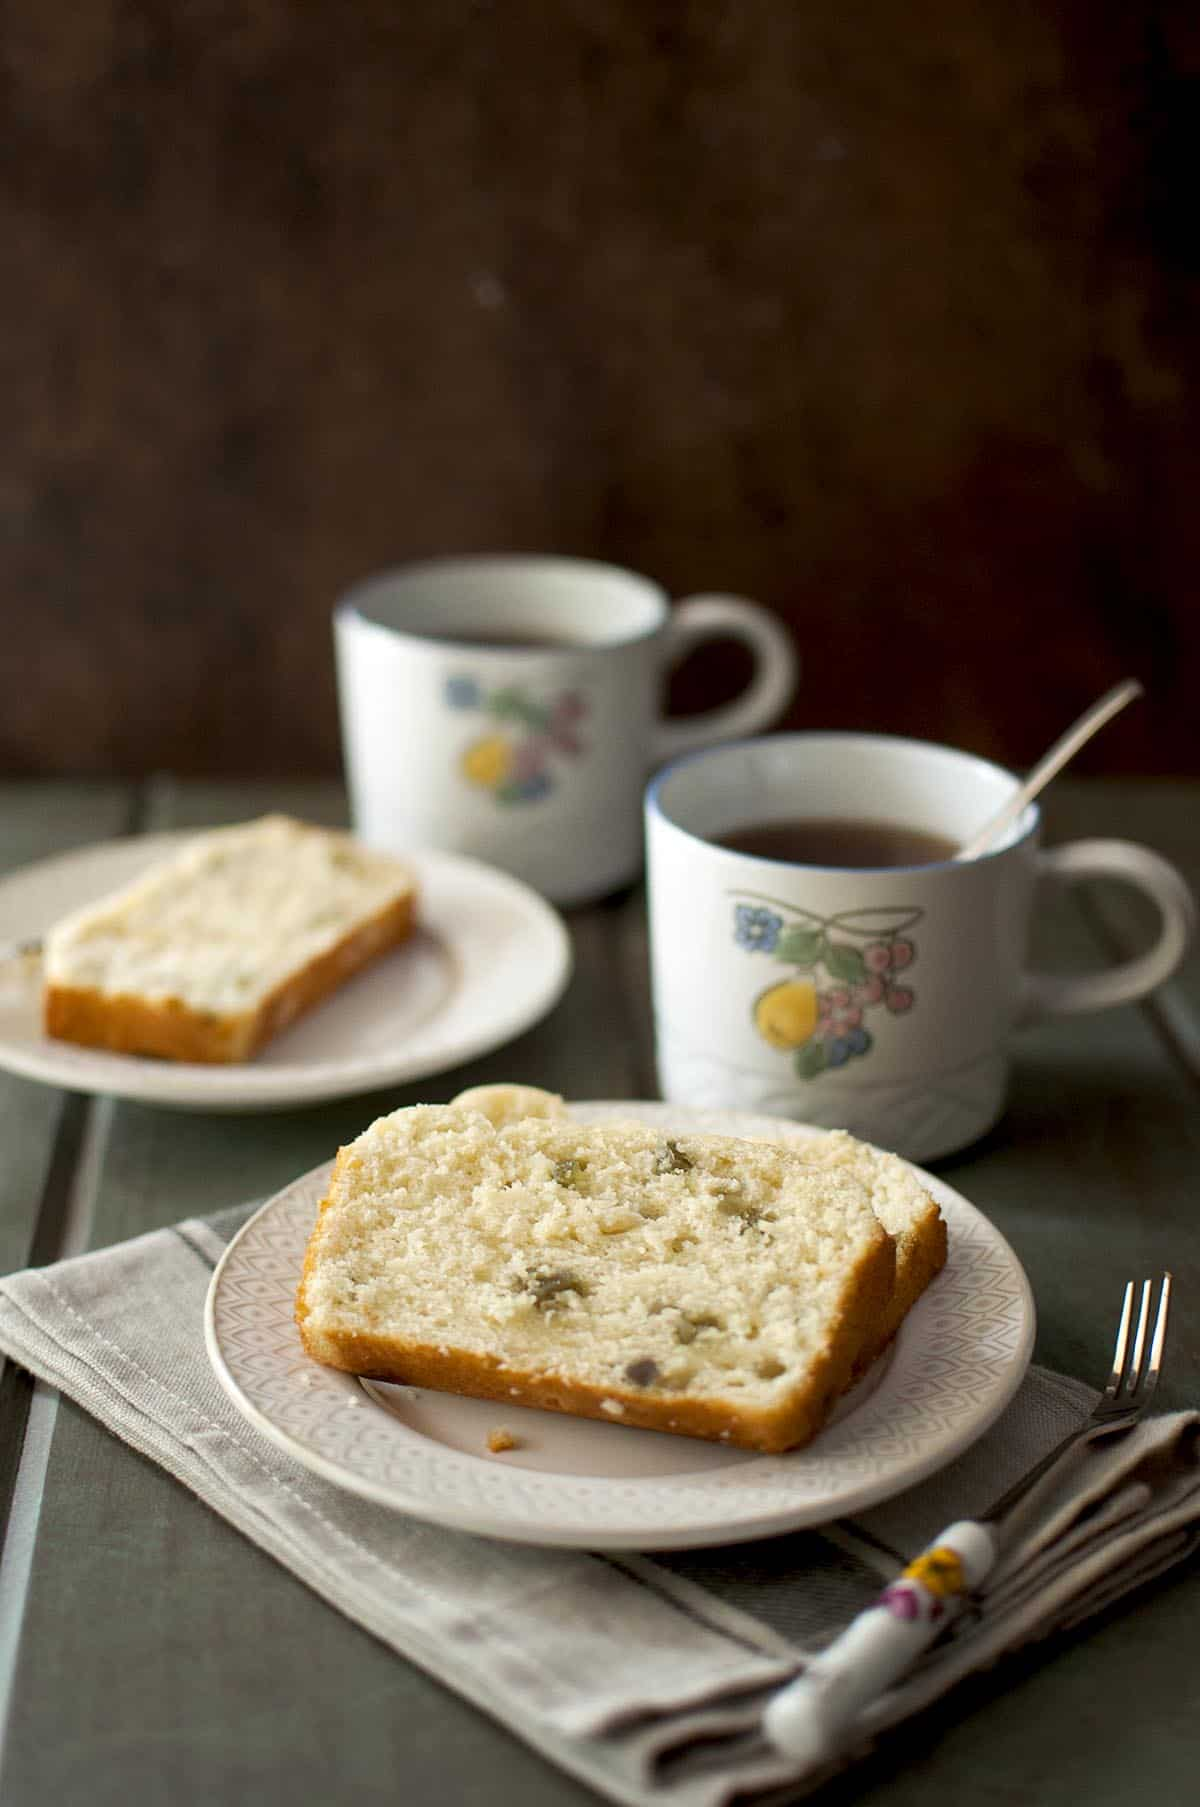 White plate with a slice of tea bread